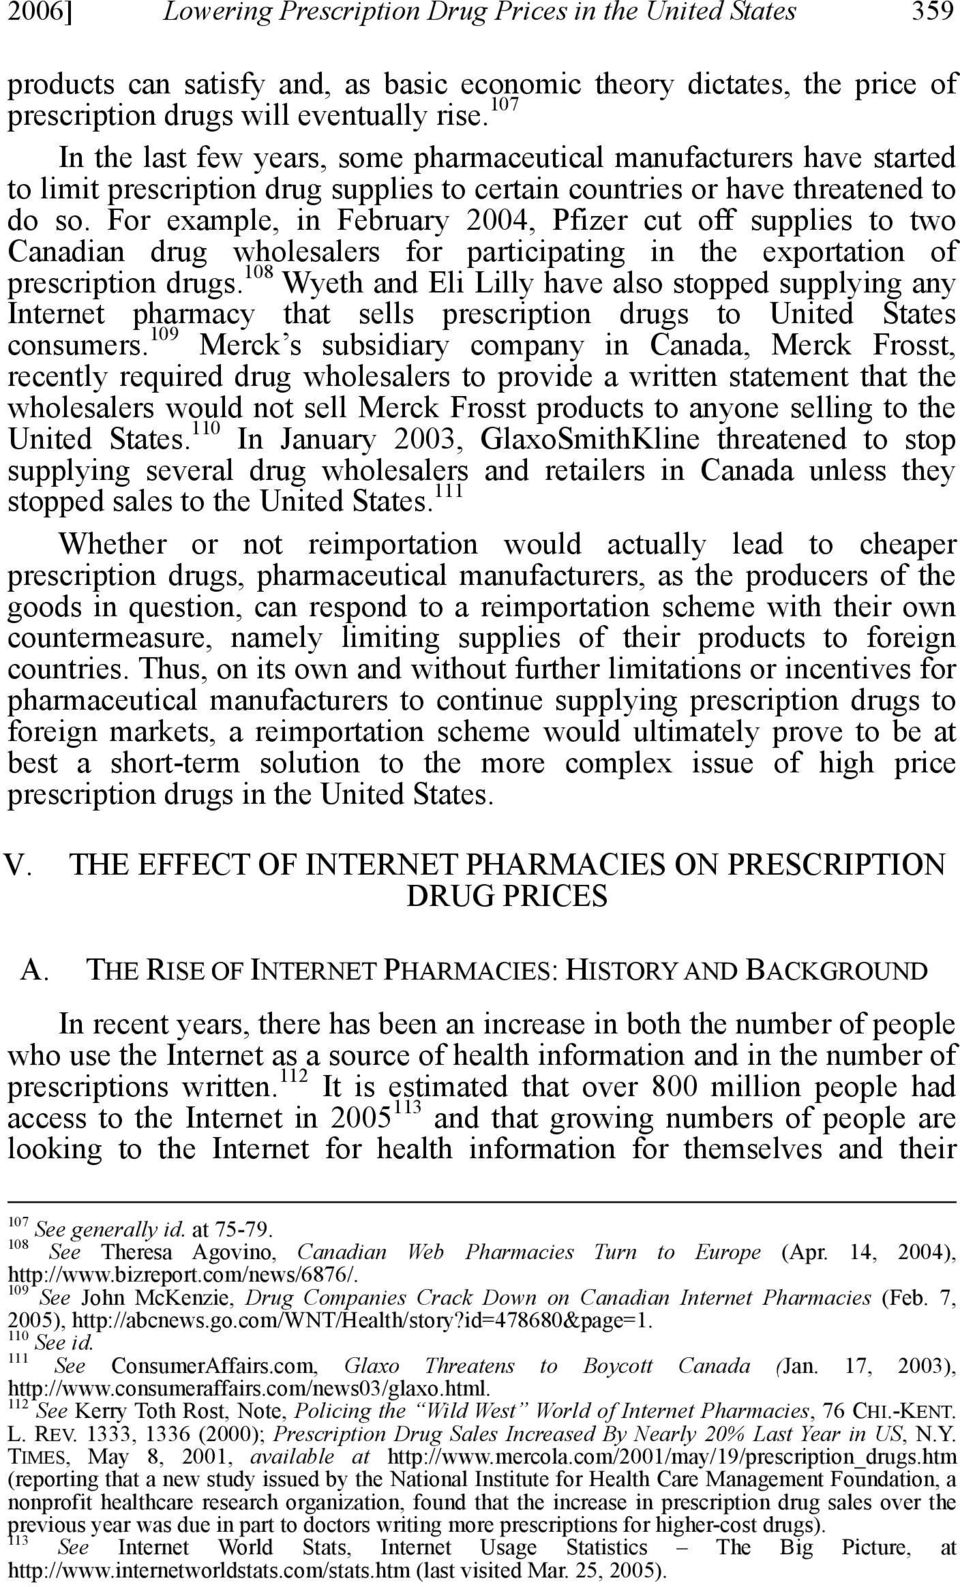 For example, in February 2004, Pfizer cut off supplies to two Canadian drug wholesalers for participating in the exportation of prescription drugs.